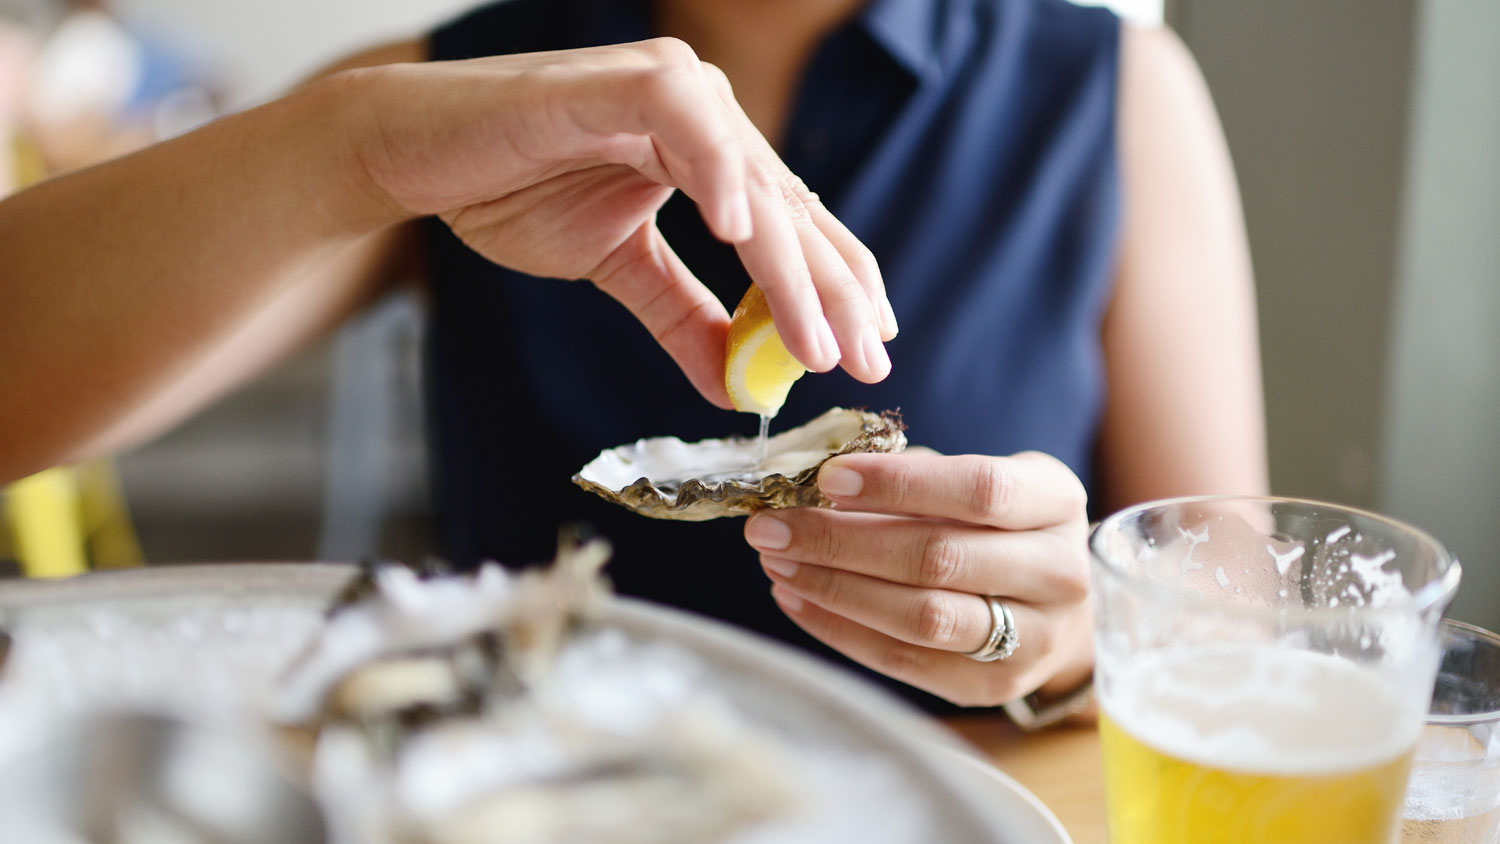 people try their first raw oyster